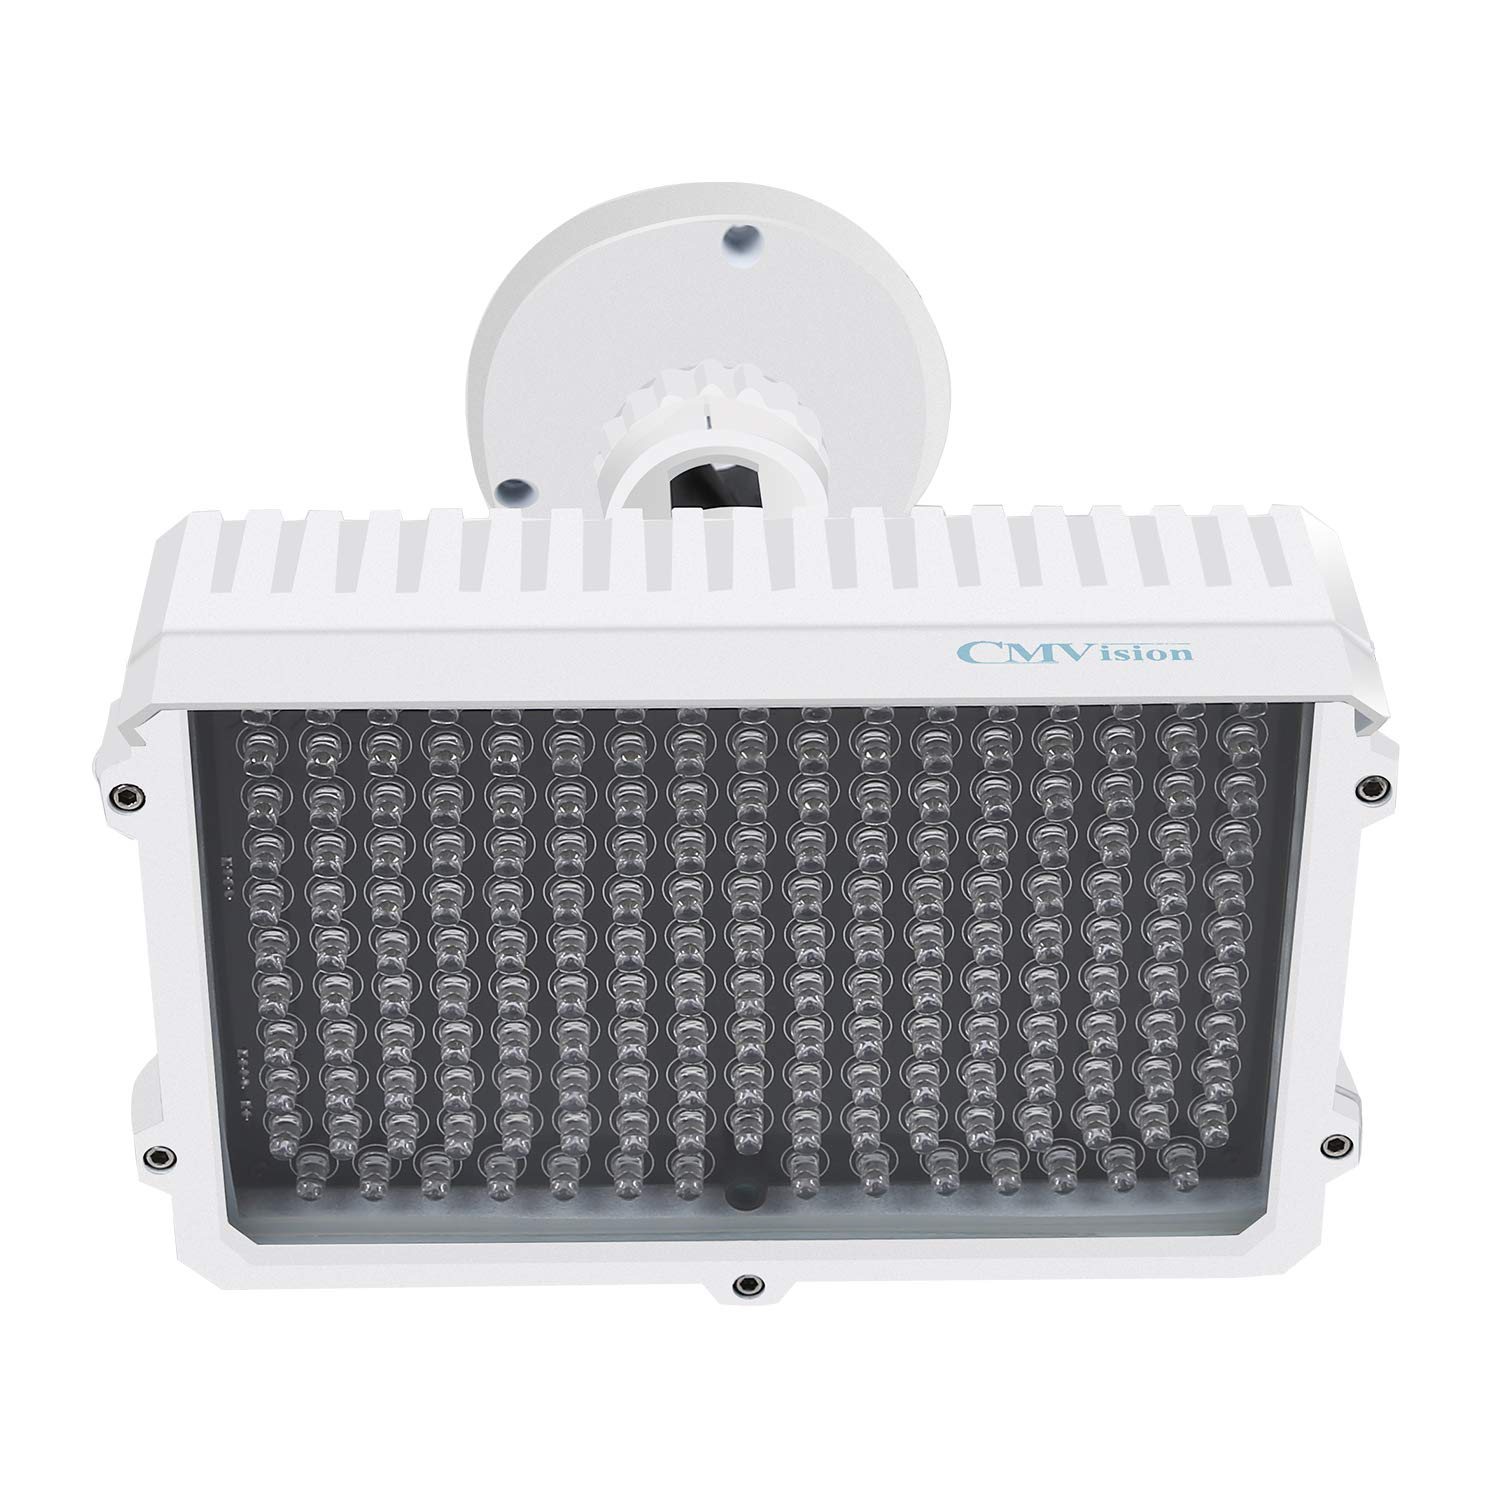 CMVision IR130-830NM - 198 LED Indoor/Outdoor Long Range 150 feet IR Illuminator with Free 3A 12VDC Power Adaptor (Special for photobiomodulation, Light Therapy Application) by CMVision (Image #2)